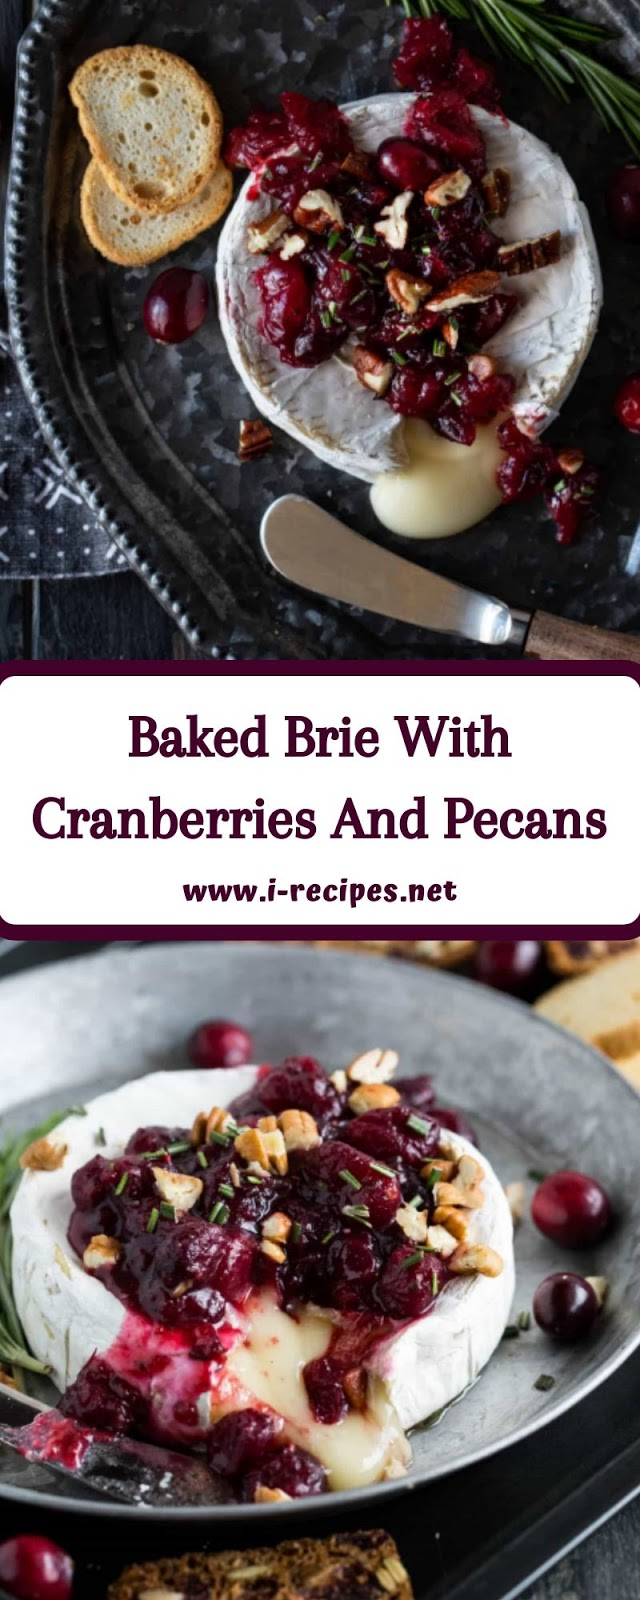 Baked Brie With Cranberries And Pecans